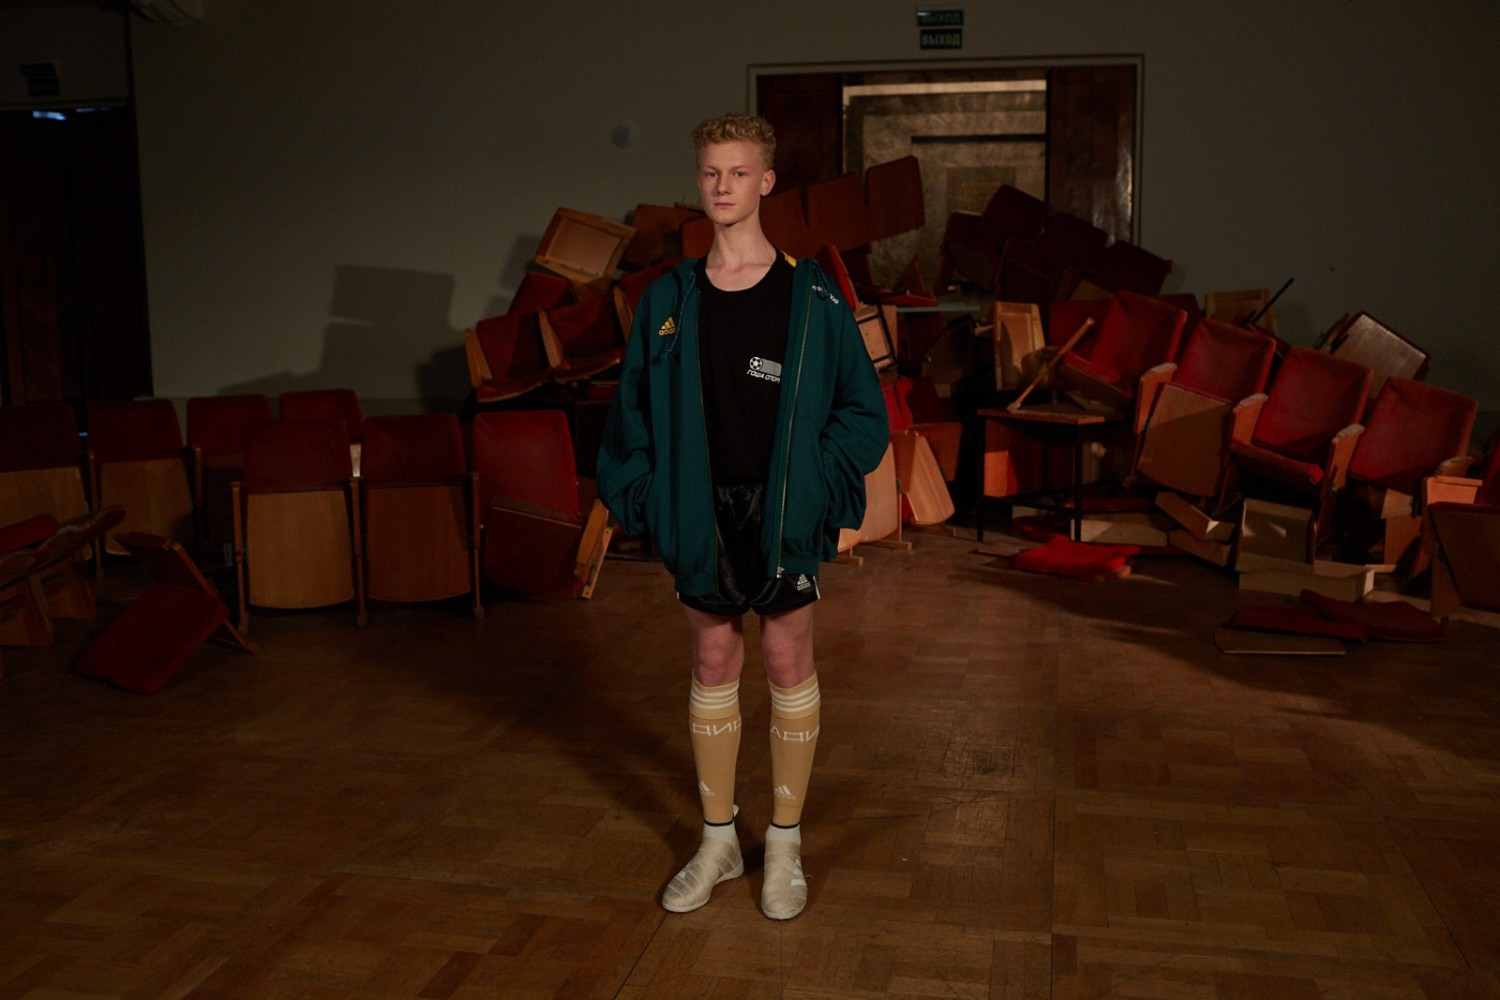 gosha-rubchinskiy-spring-summer-2018-lookbook-5